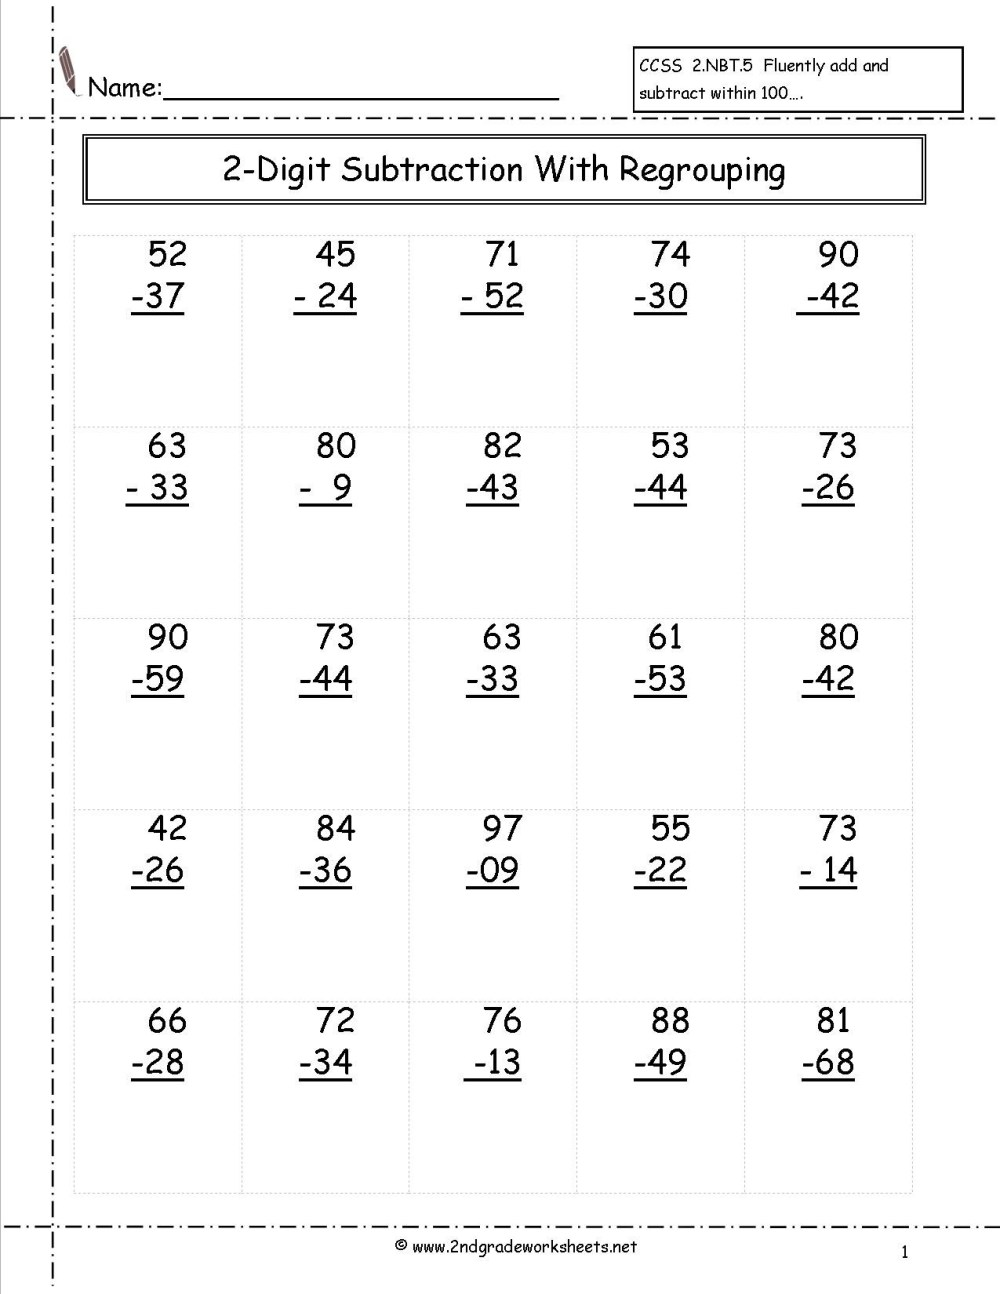 medium resolution of 4 Free Math Worksheets First Grade 1 Subtraction Subtract 1 Digit From 2  Digit No Regrouping - apocalomegaproductions.com